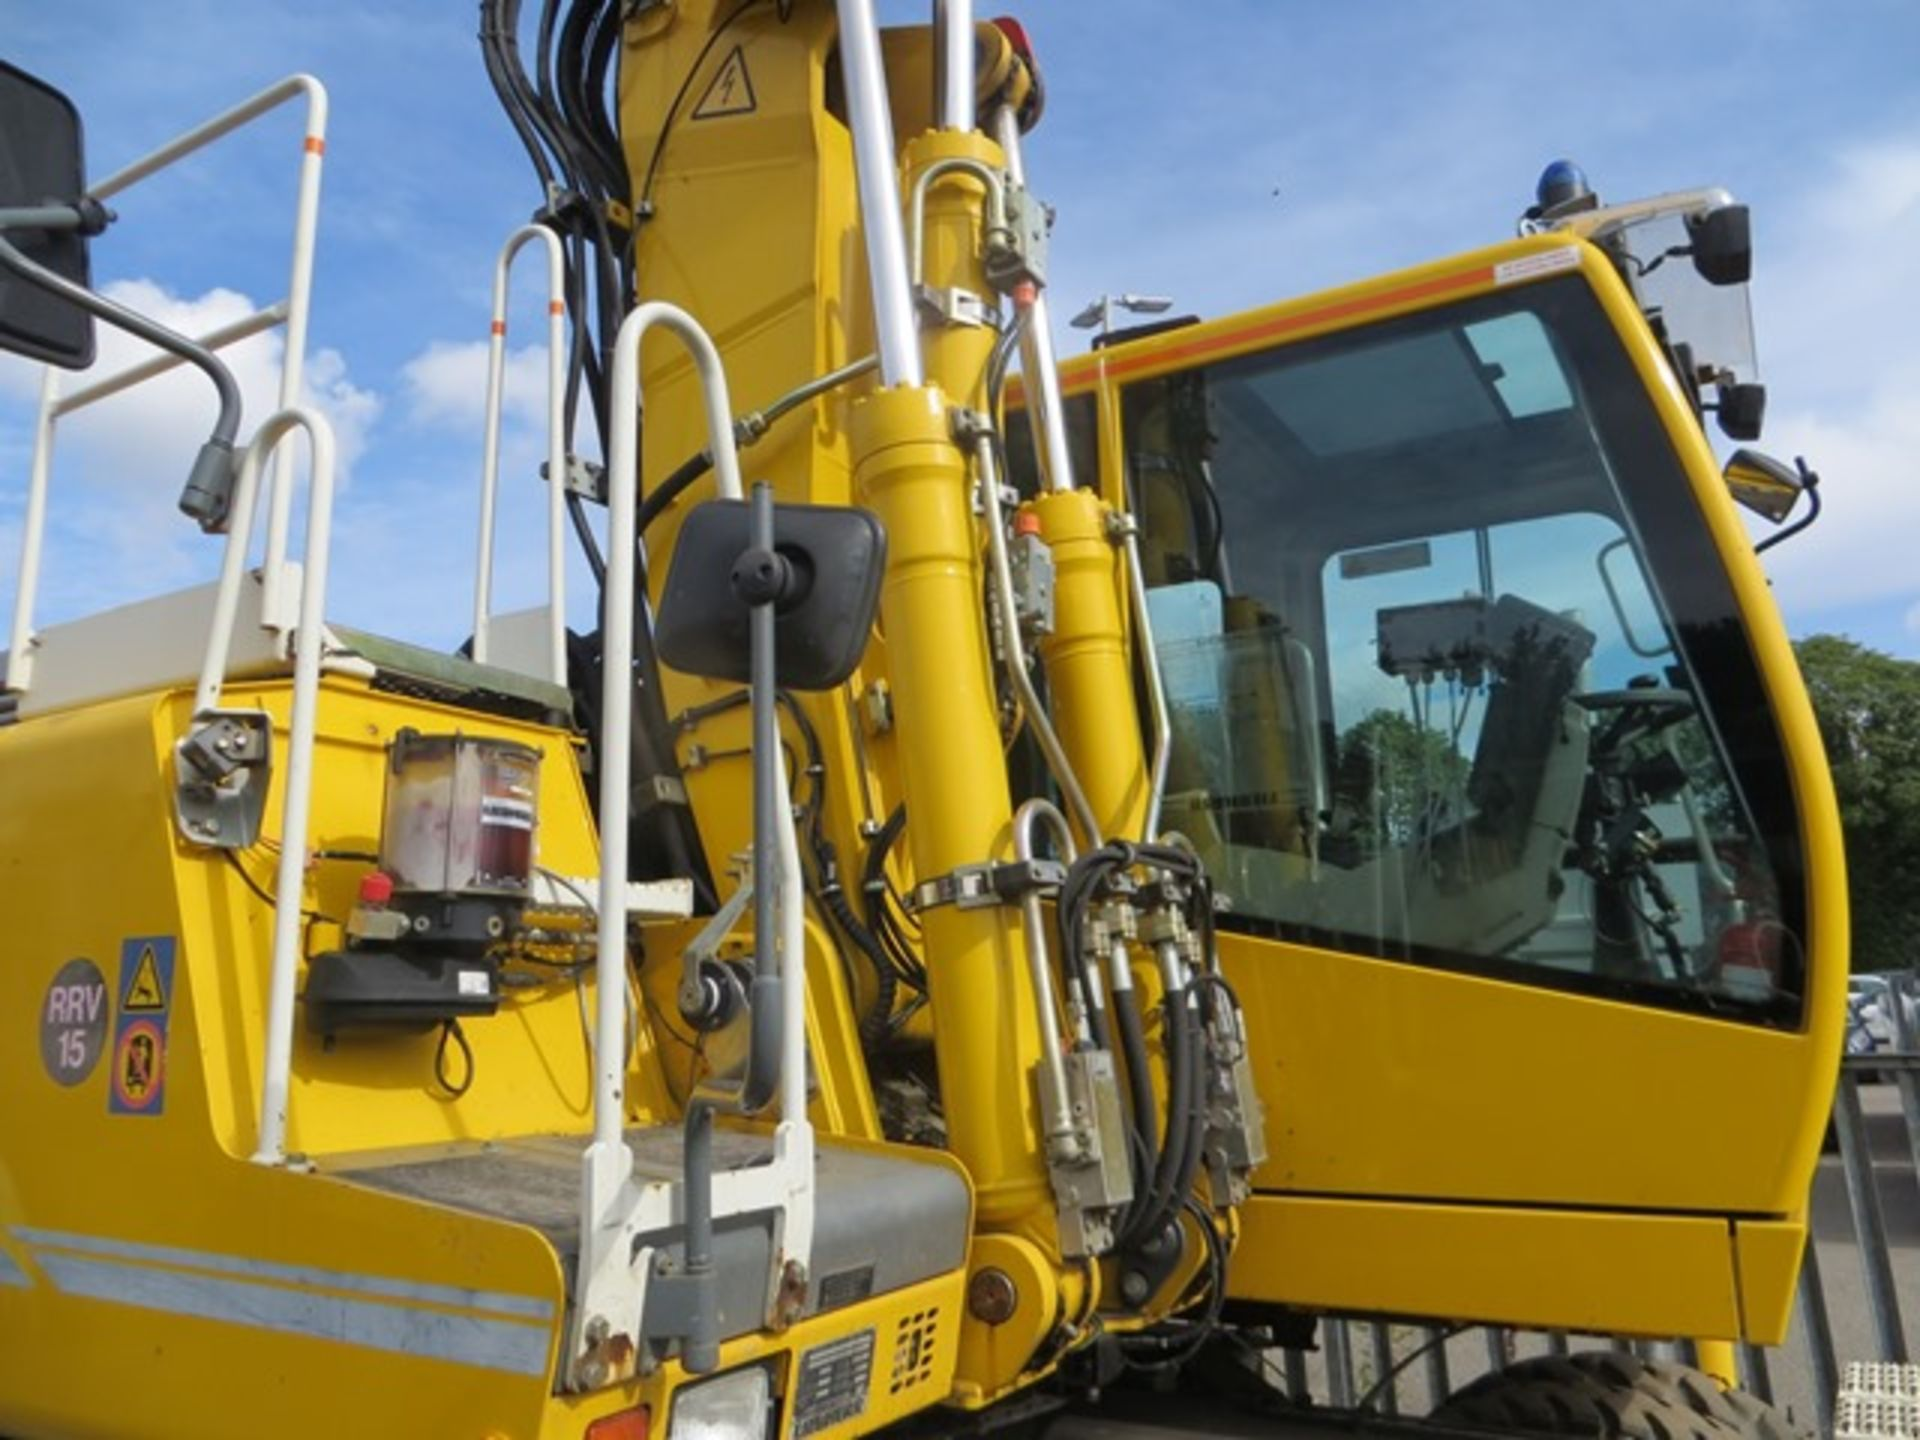 Lot 6 - Liebherr A900C ZW road / rail excavator s/n 364 (2013) running hours approx 2,500. On-Track Plant